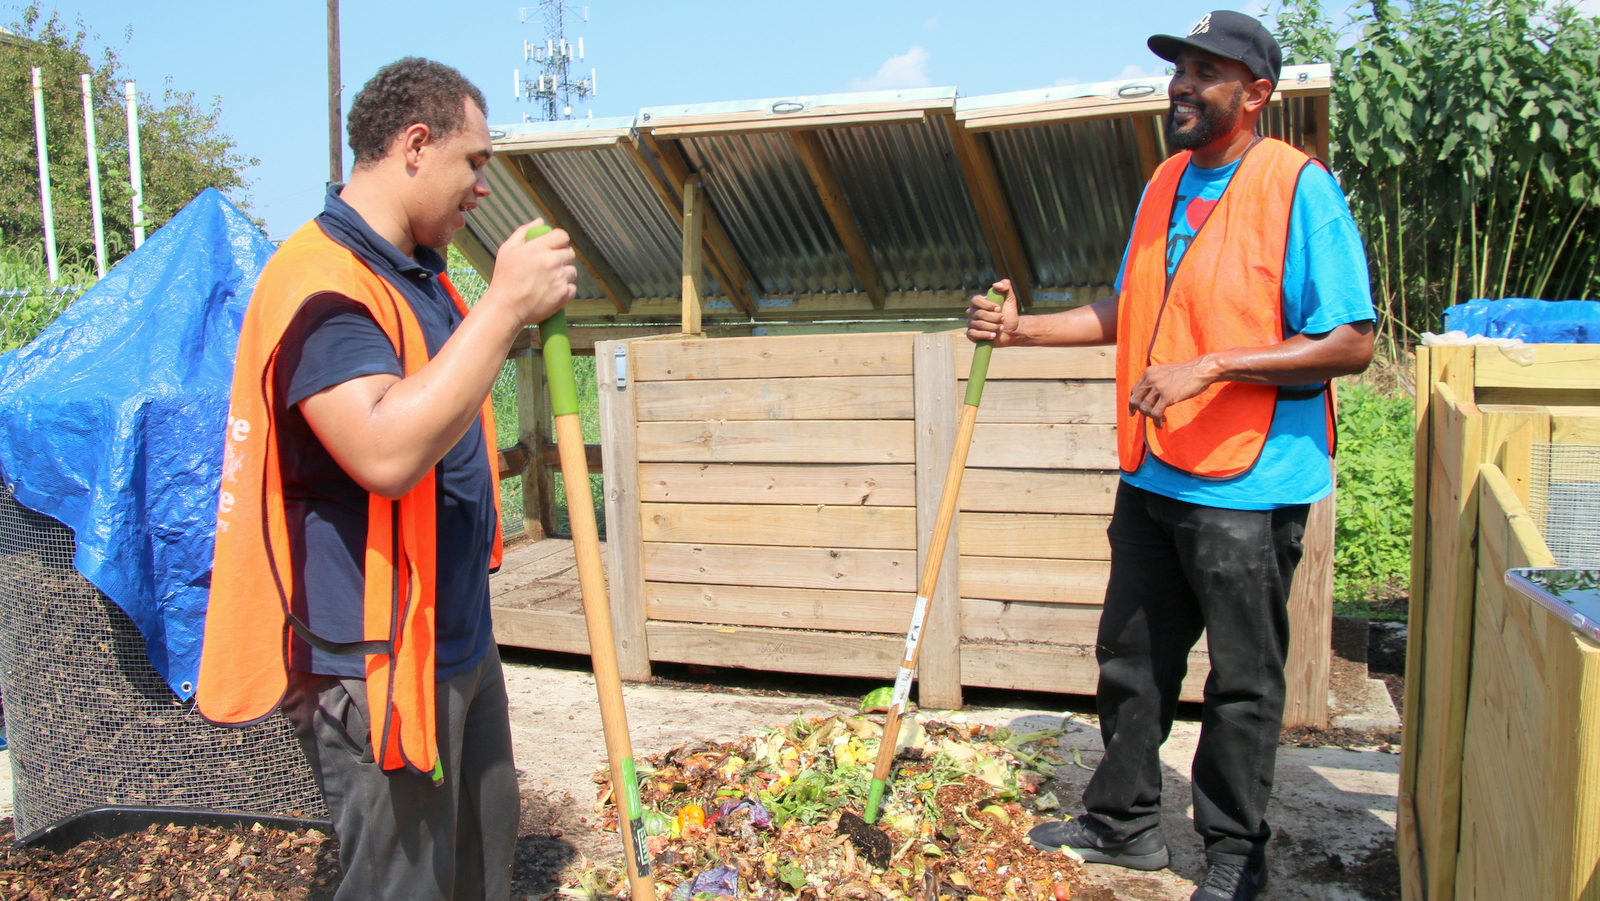 From left, Anthony Walton and Marvin Hayes, of the Baltimore Compost Collective, chop food waste. (Fern Shen)